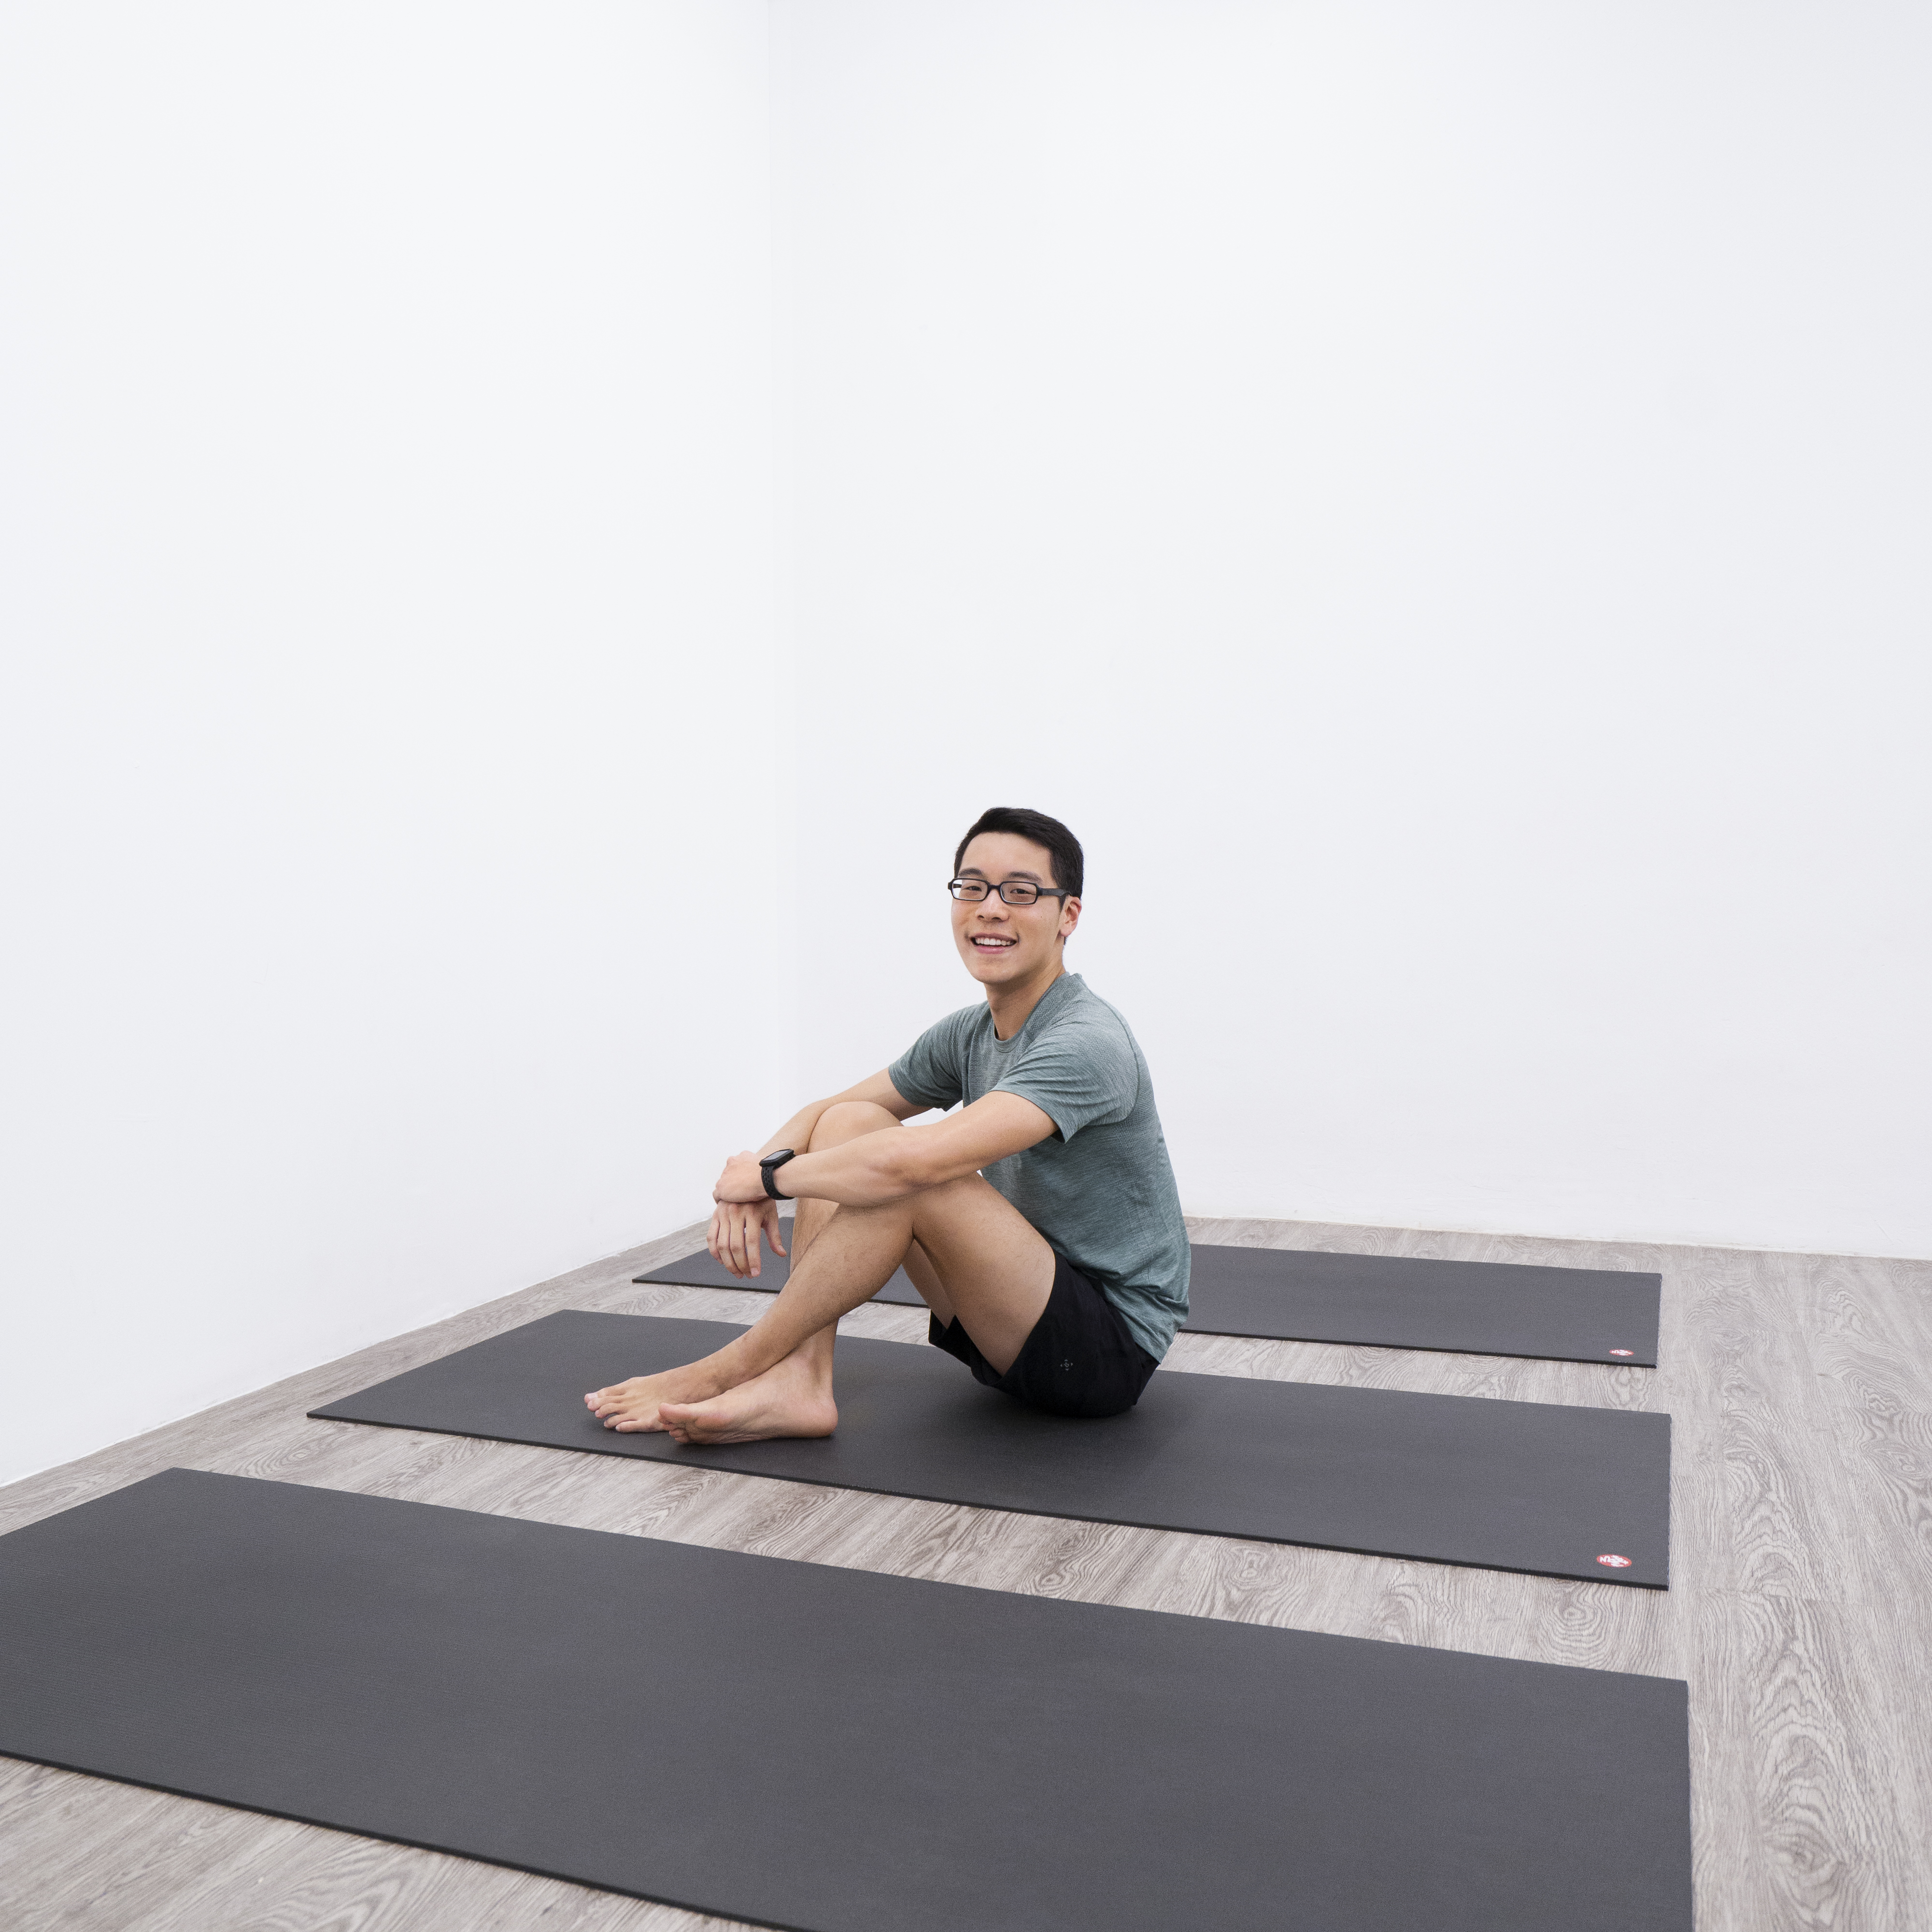 Freedom Yoga's Chan Wei Ren tells us how to loosen those knots with simple steps at home. Photo: Freedom Yoga